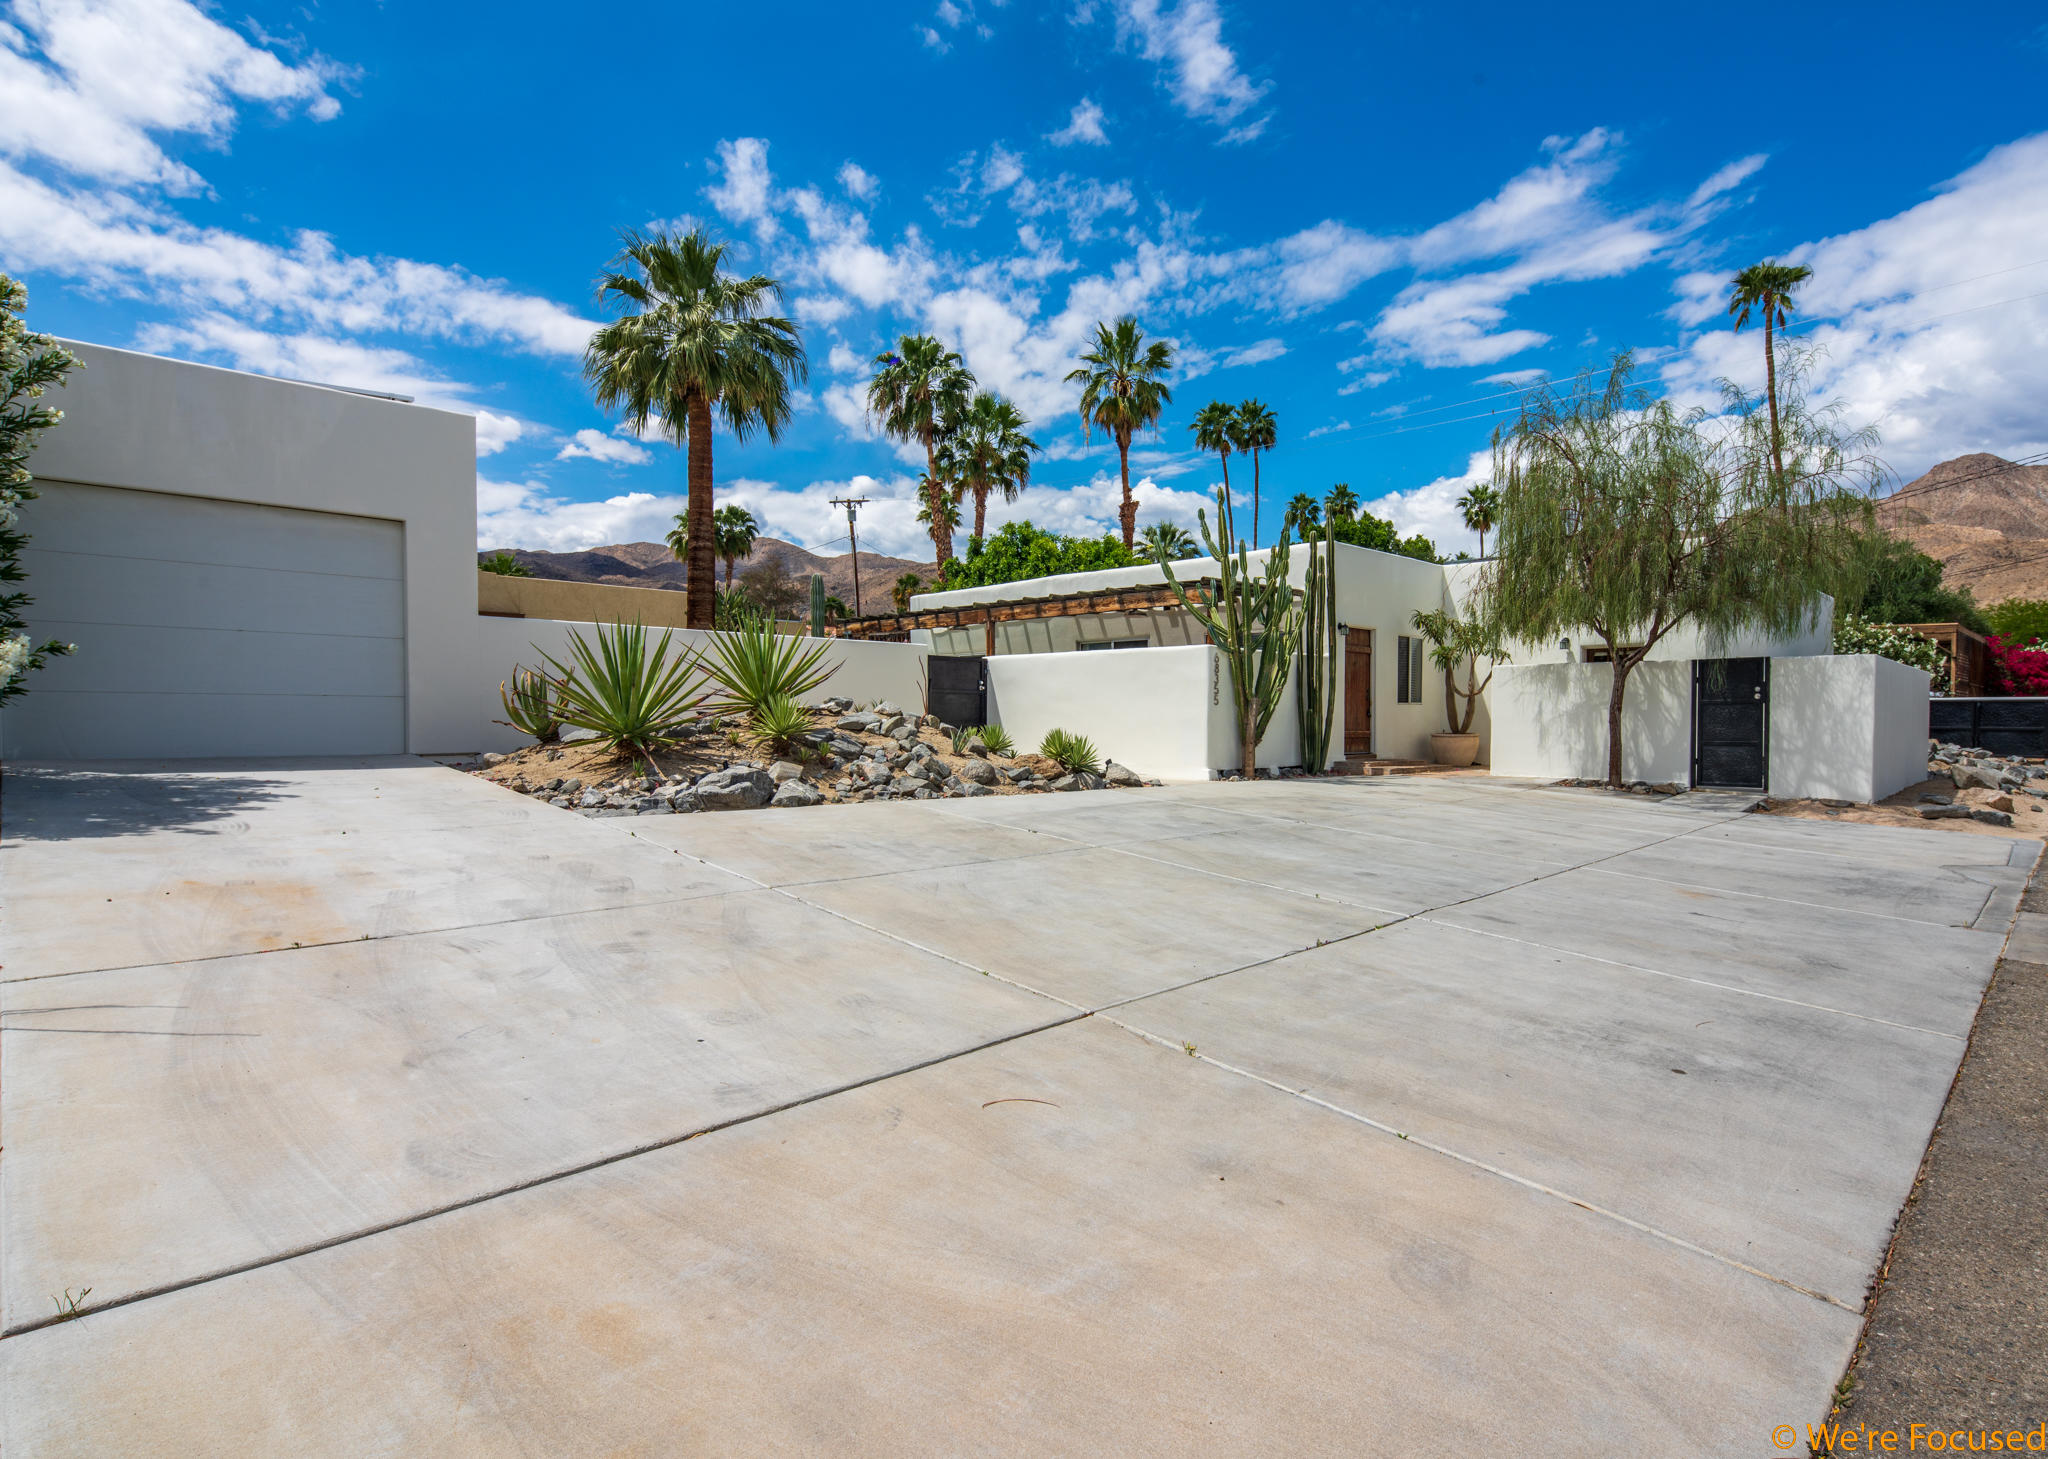 Top Performing Sante Fe home! If you are looking for the best floor plan in the Cathedral City Cove division.. here we present a 2500 square feet single story home, 6 bedrooms including the casita with its private bathroom, and a pool house! Open kitchen, an entertainers delight. Beautiful mountain views all around, you can feel the calmness and exclusiveness of the area! Many windows for that natural lighting. Tri-level pool with large spa, infinity edge, and a waterfall for your hot days! Steam room also included. Limitless upgrades.. this home appeals to even the most discriminating buyers! Come make this your desert getaway.